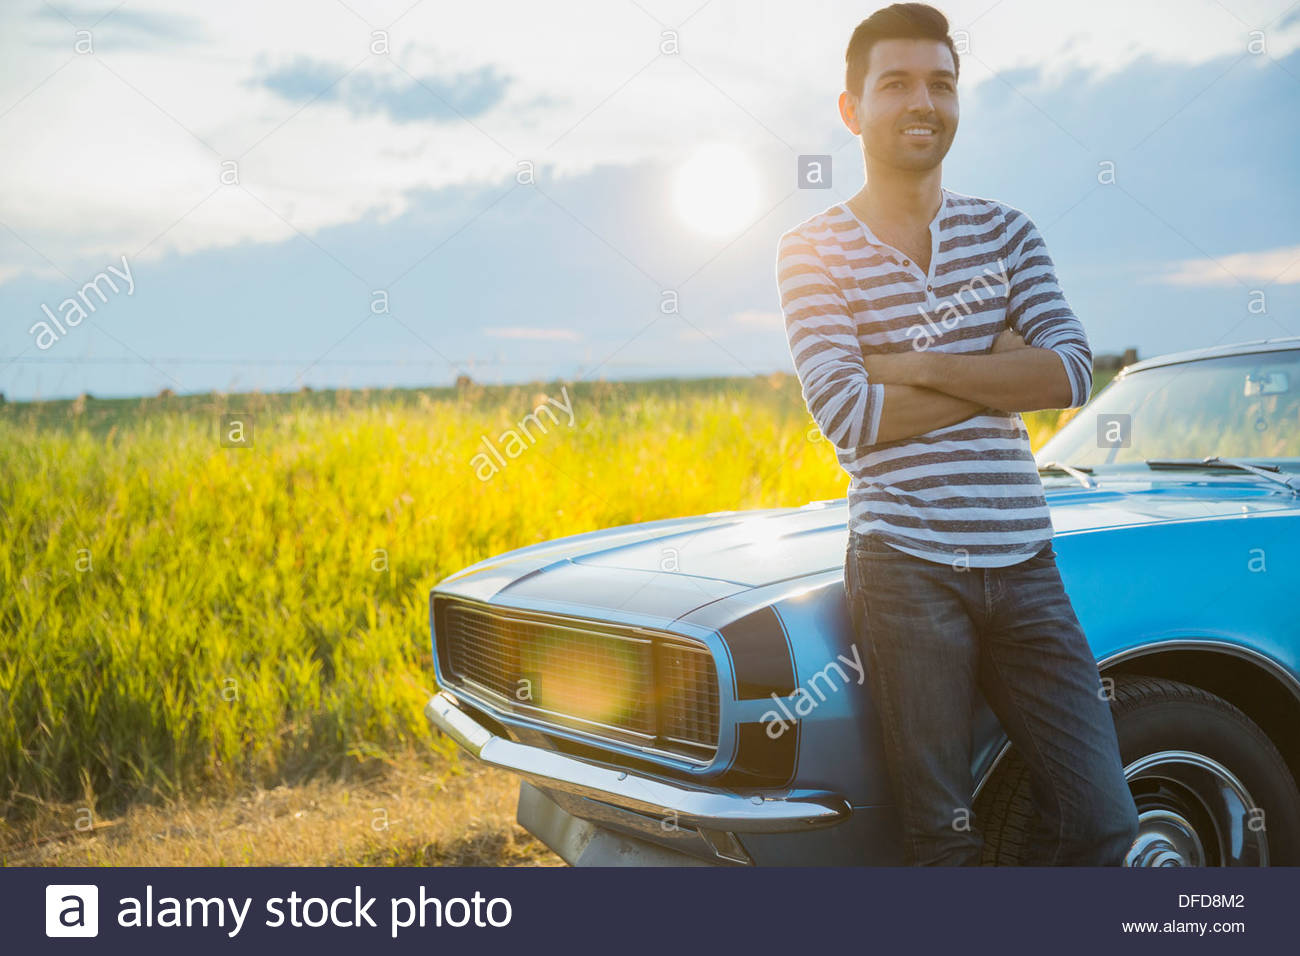 Smiling man leaning against convertible - Stock Image